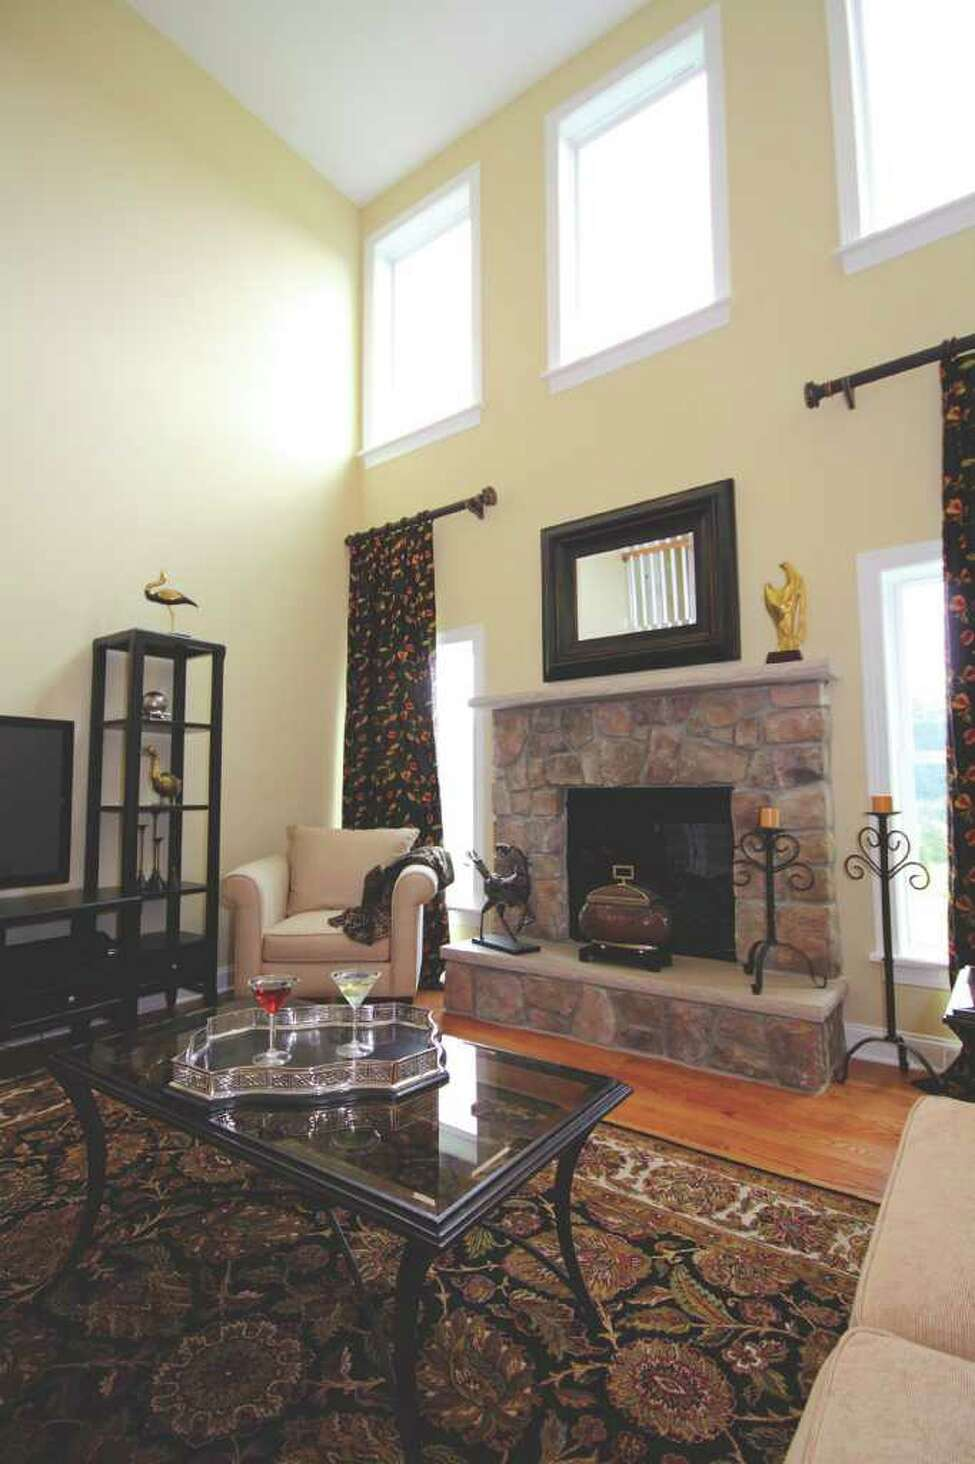 Luxury Showcase For Living Room Royal Art Deco: Great Rooms: A Sneak Peek At The Saratoga Showcase Of Homes